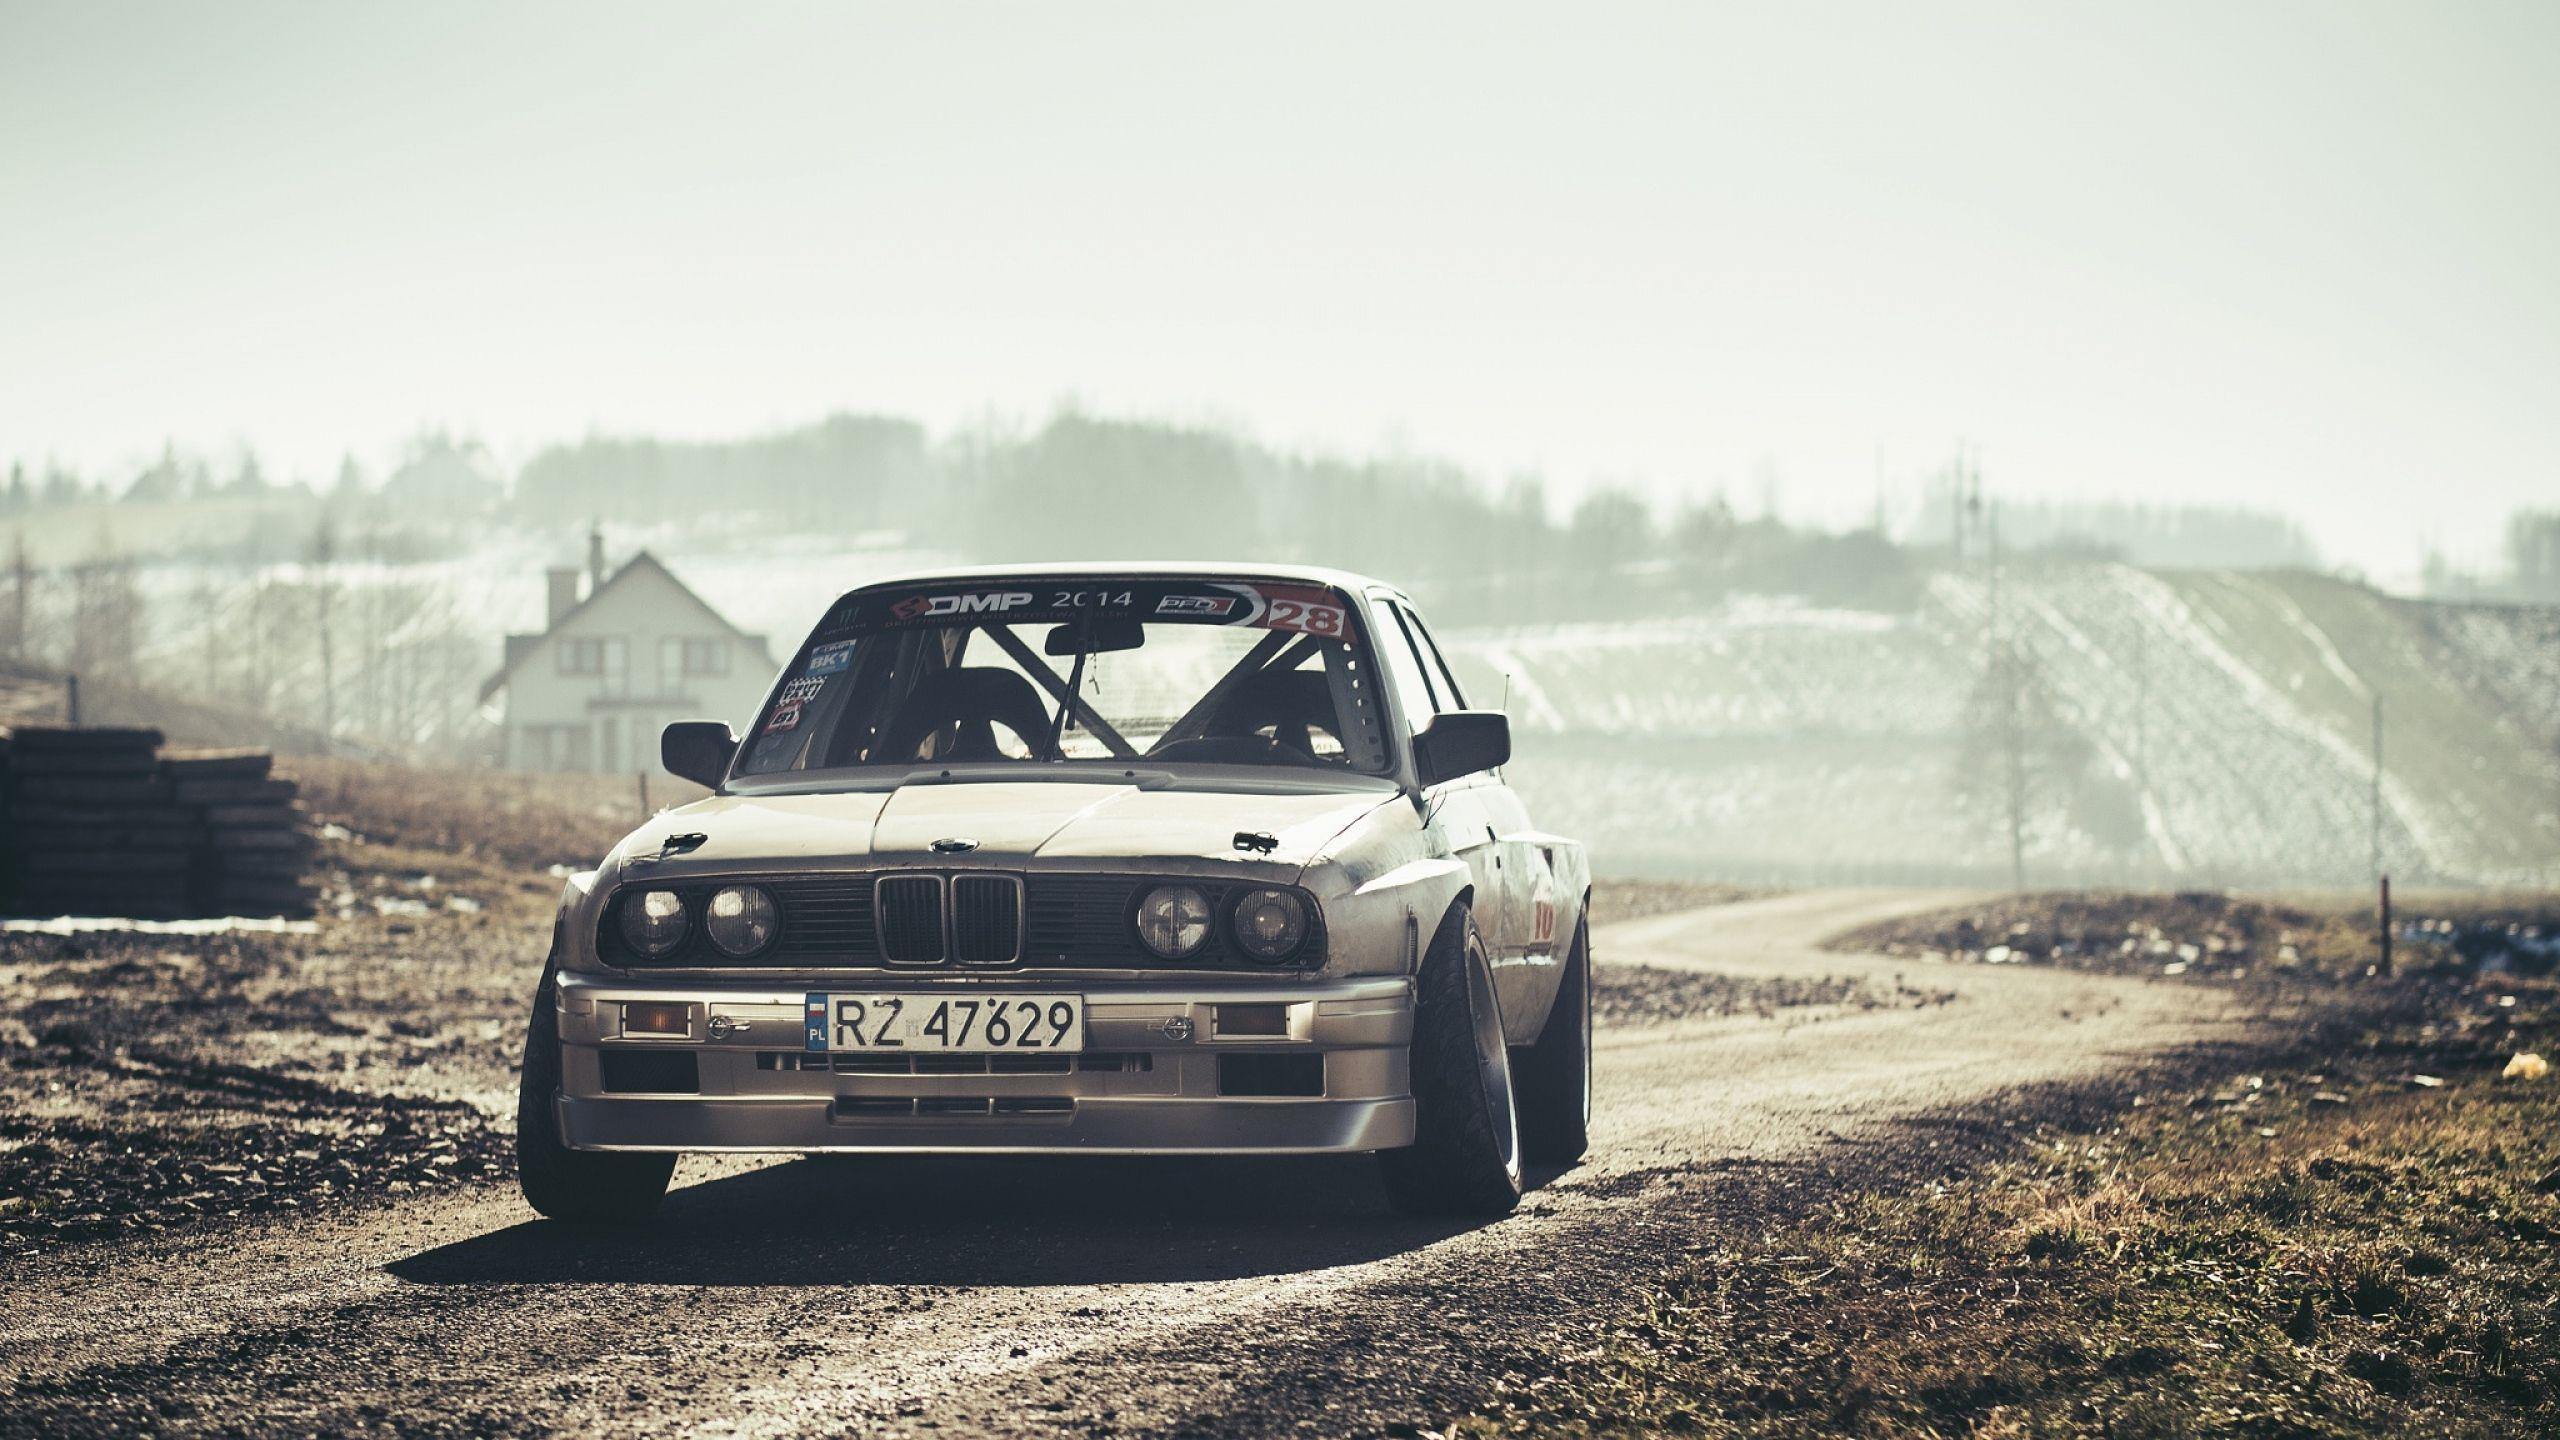 Bmw E30 Wallpaper Mobile The Best Hd Wallpaper